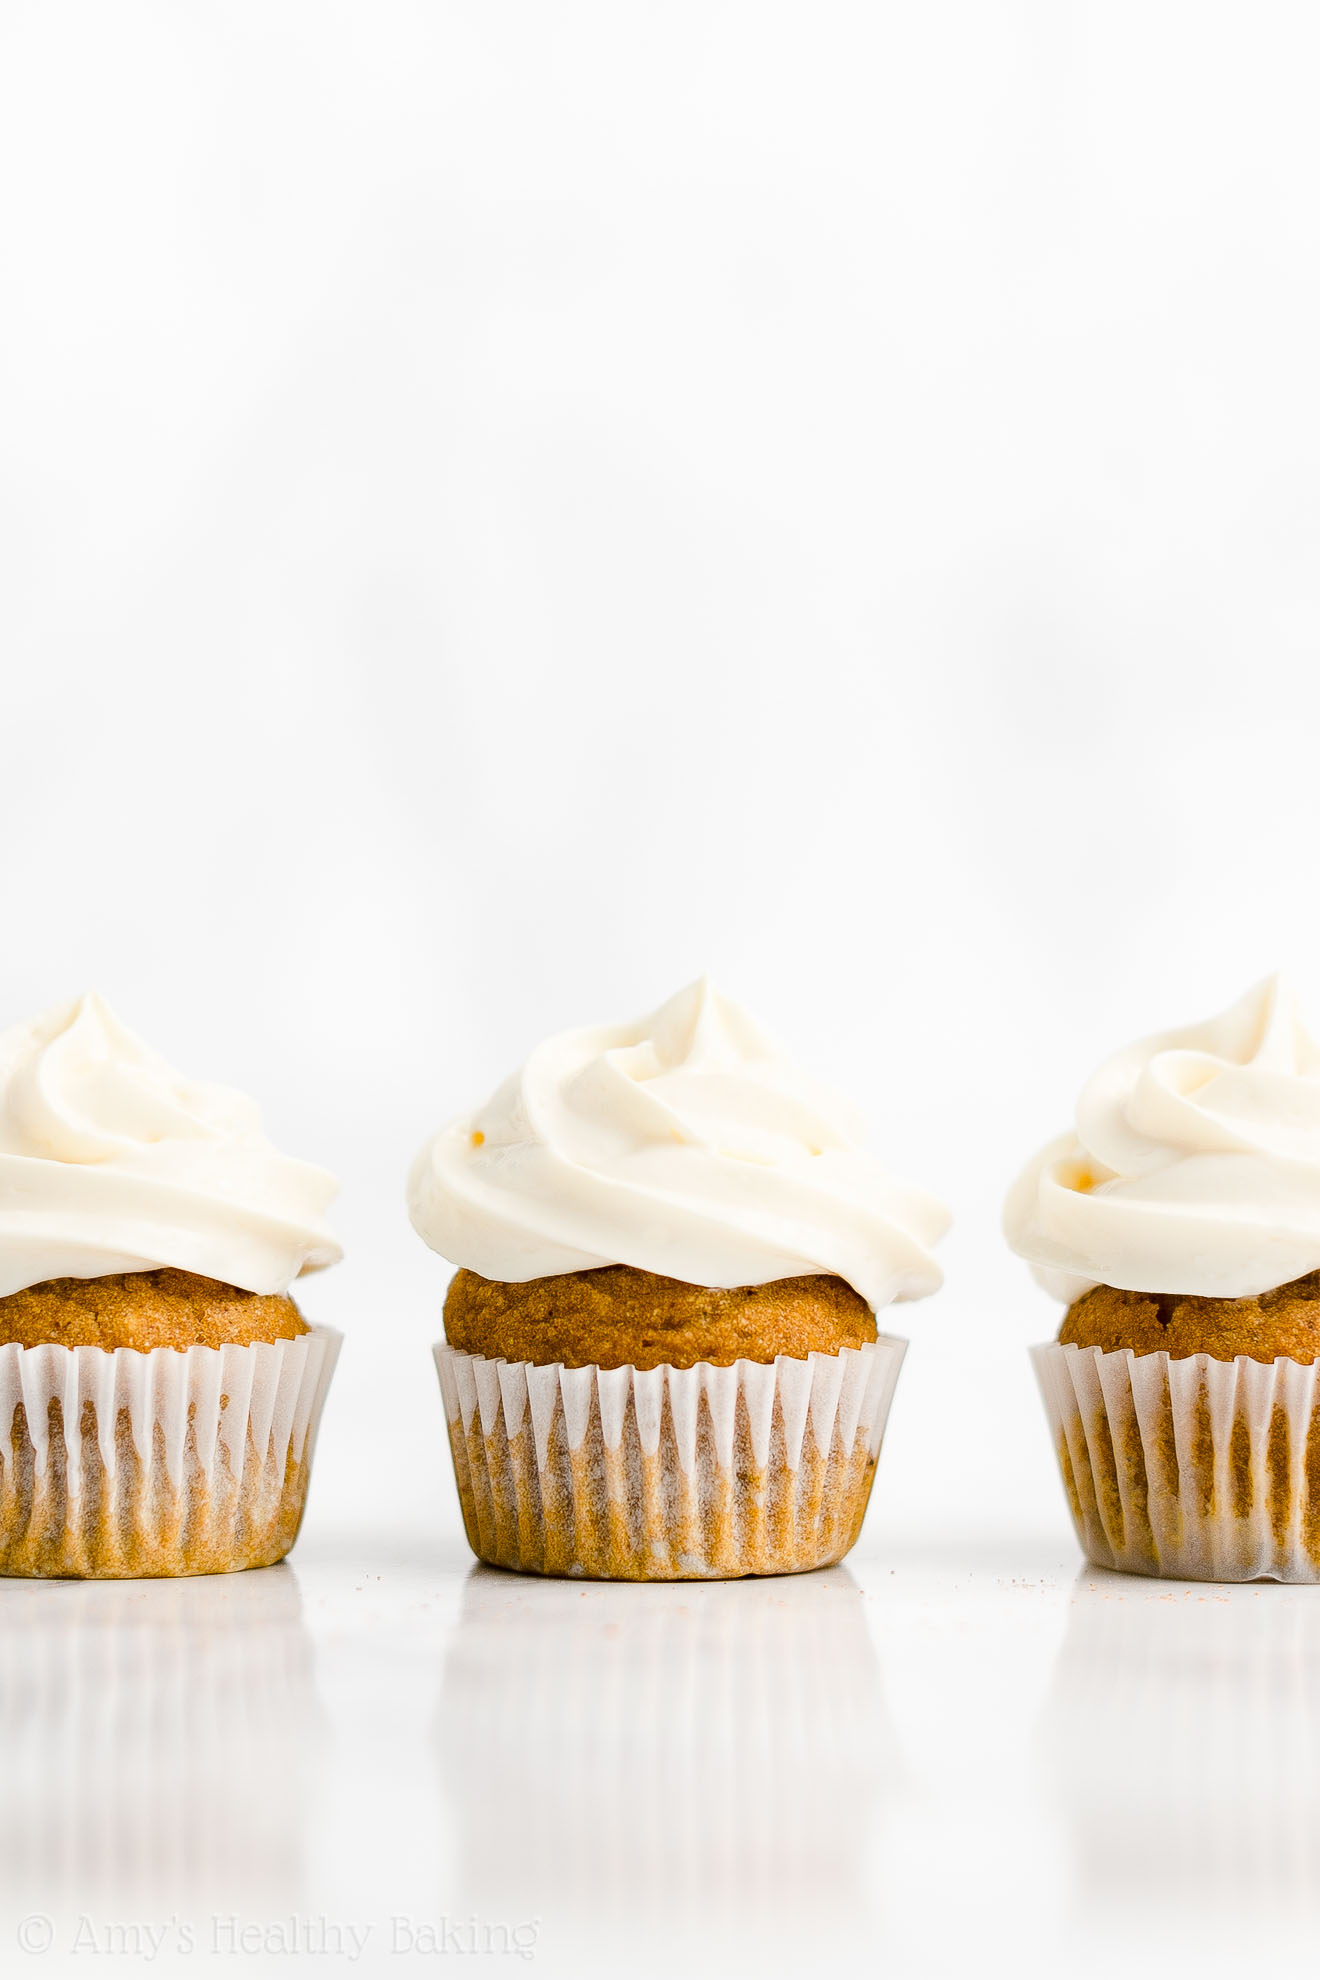 Best Healthy Low Sugar Moist Mini Pumpkin Cupcakes + Cream Cheese Frosting